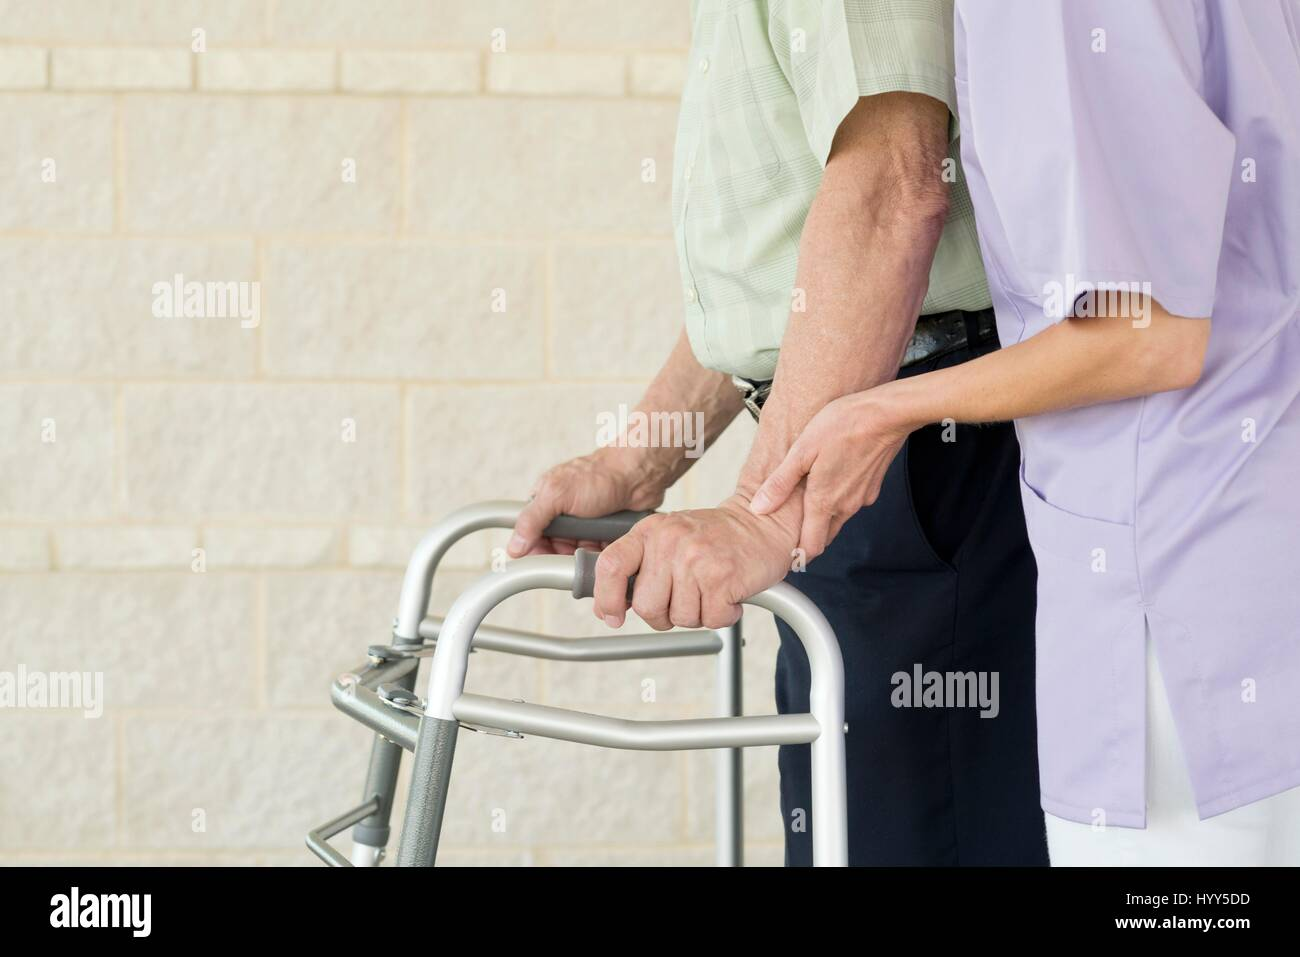 Senior man using walking support frame. - Stock Image